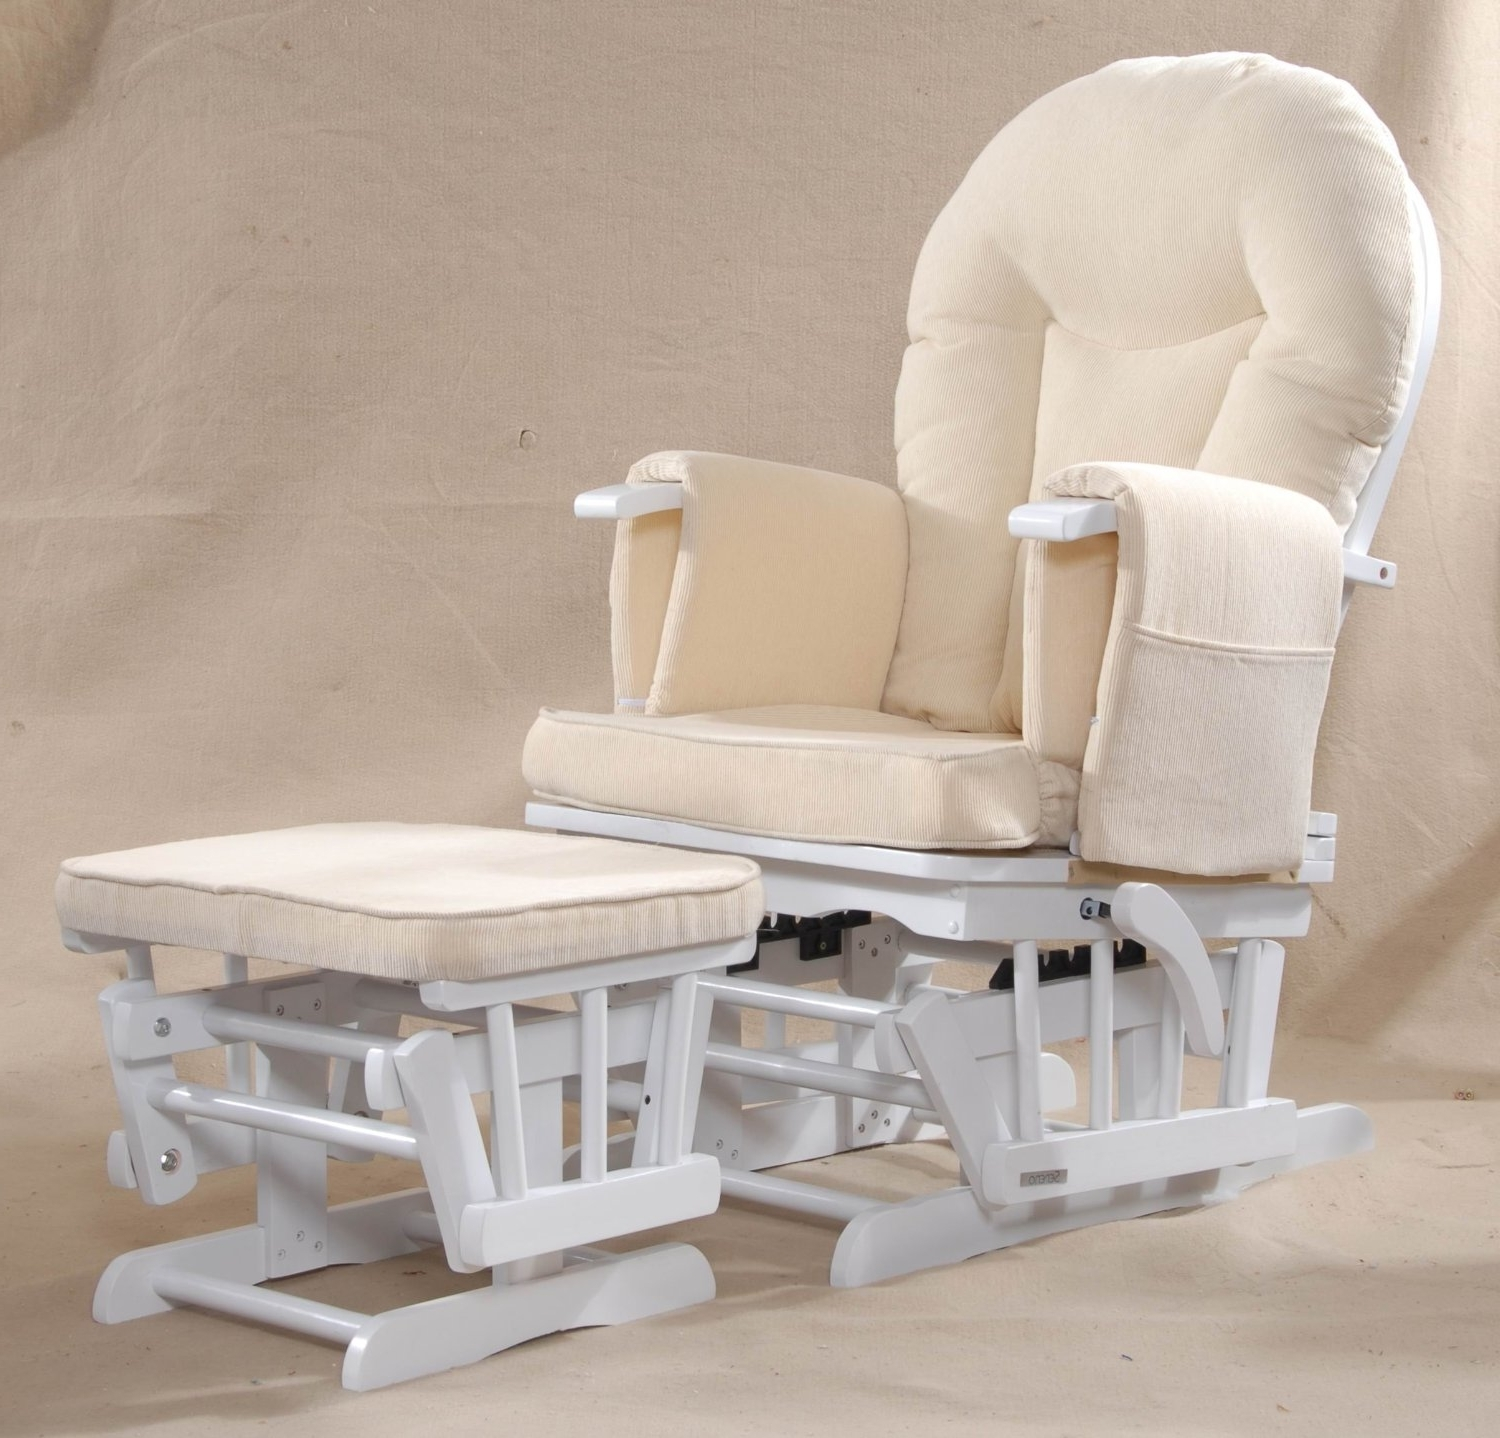 Bedroom : Nursery Rocking Chair Nursing Chair Glider Rocker Baby Inside Well Liked Rocking Chairs For Nursing (View 2 of 20)